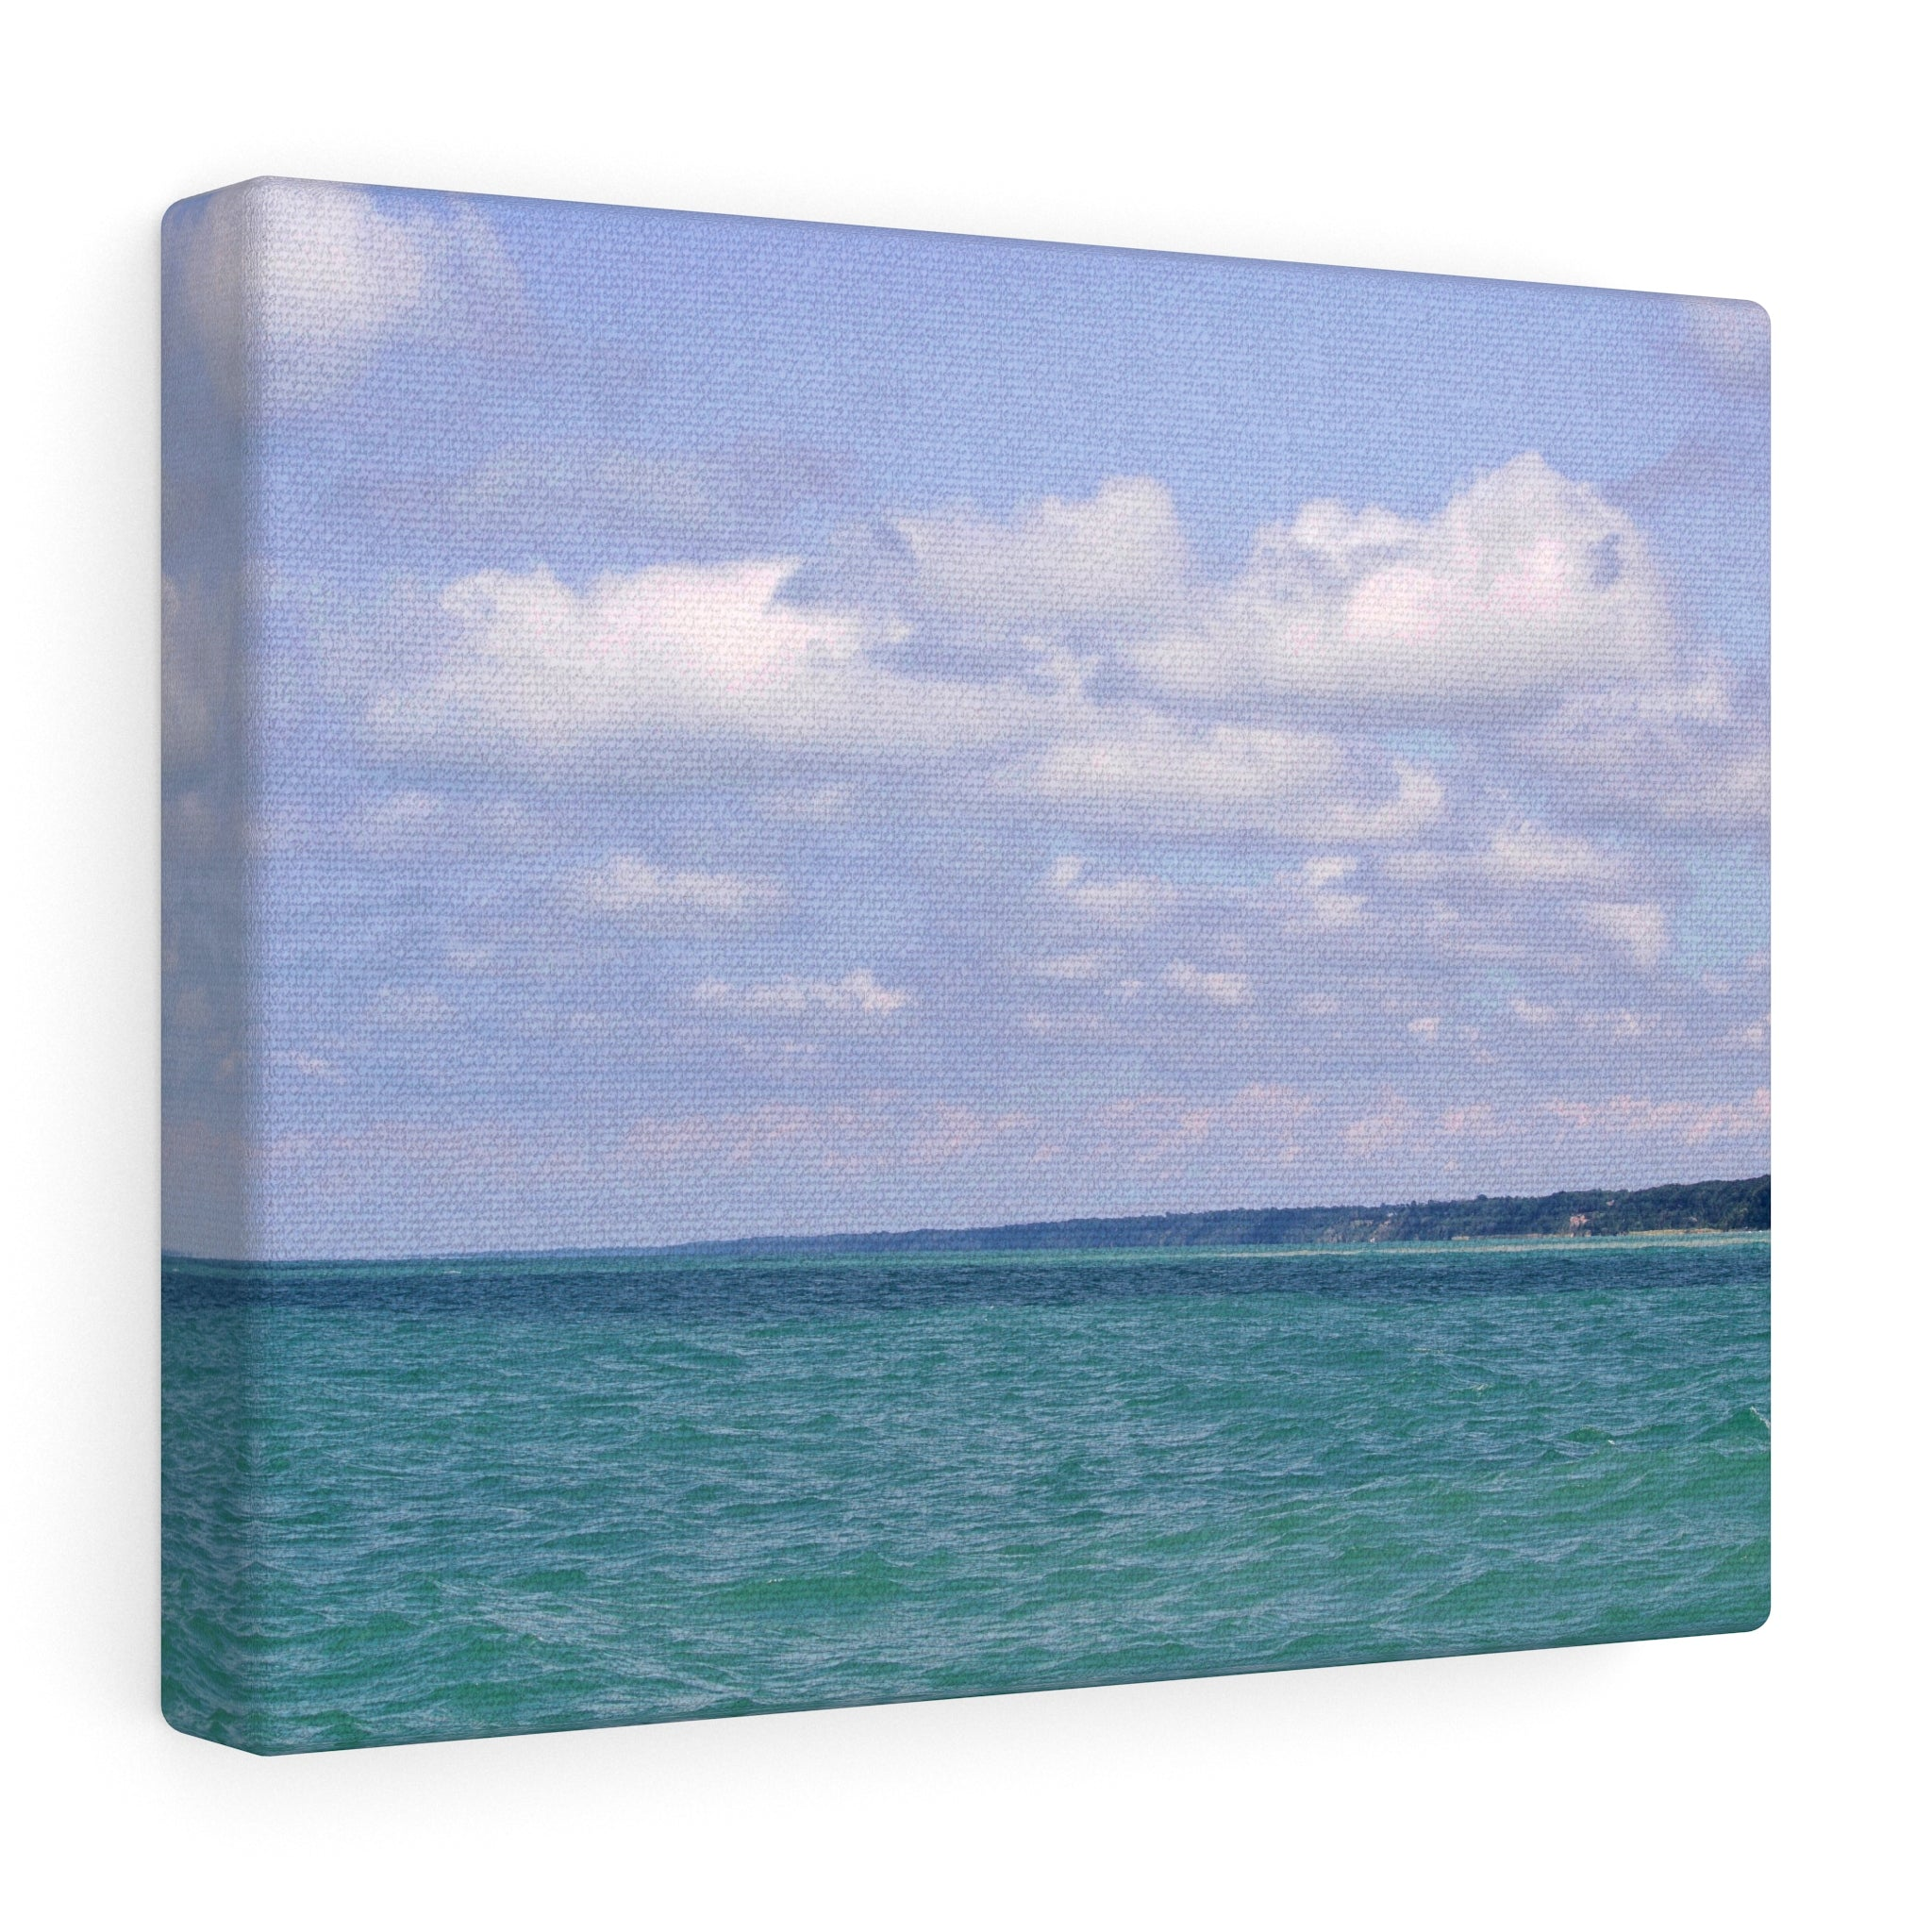 The Disappearing Coastline Canvas Gallery Wrap